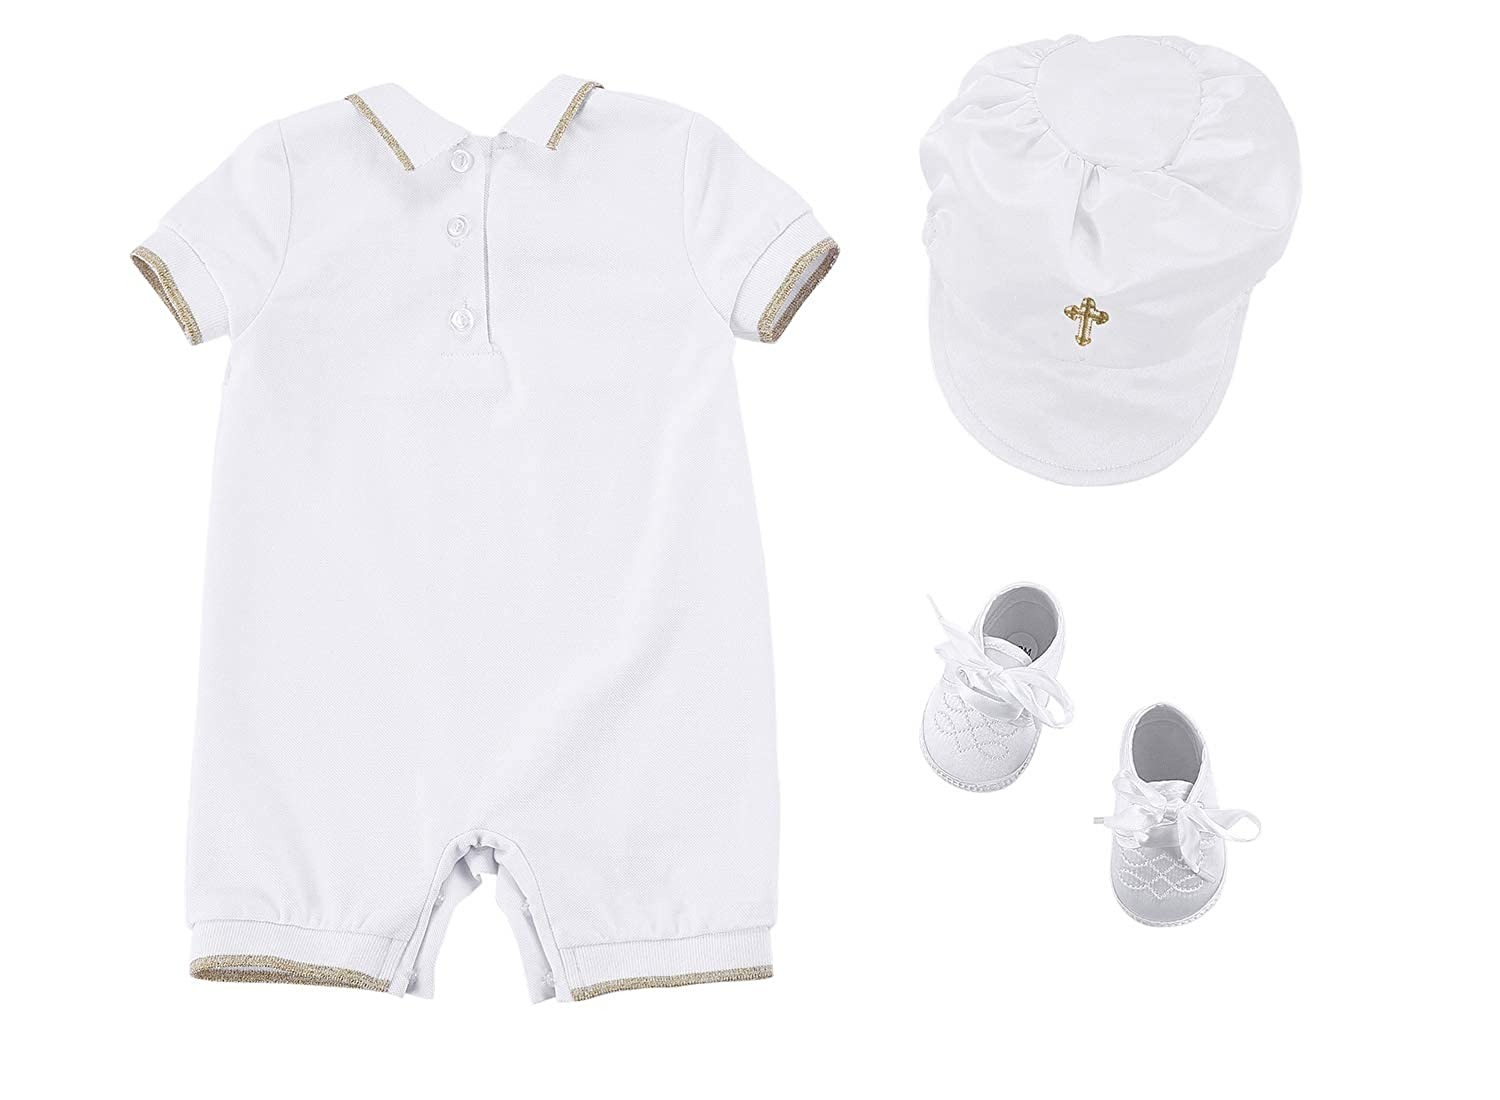 Bow Dream 3 pcs Baby Boy Baptism Outfit with Hat and Shoes